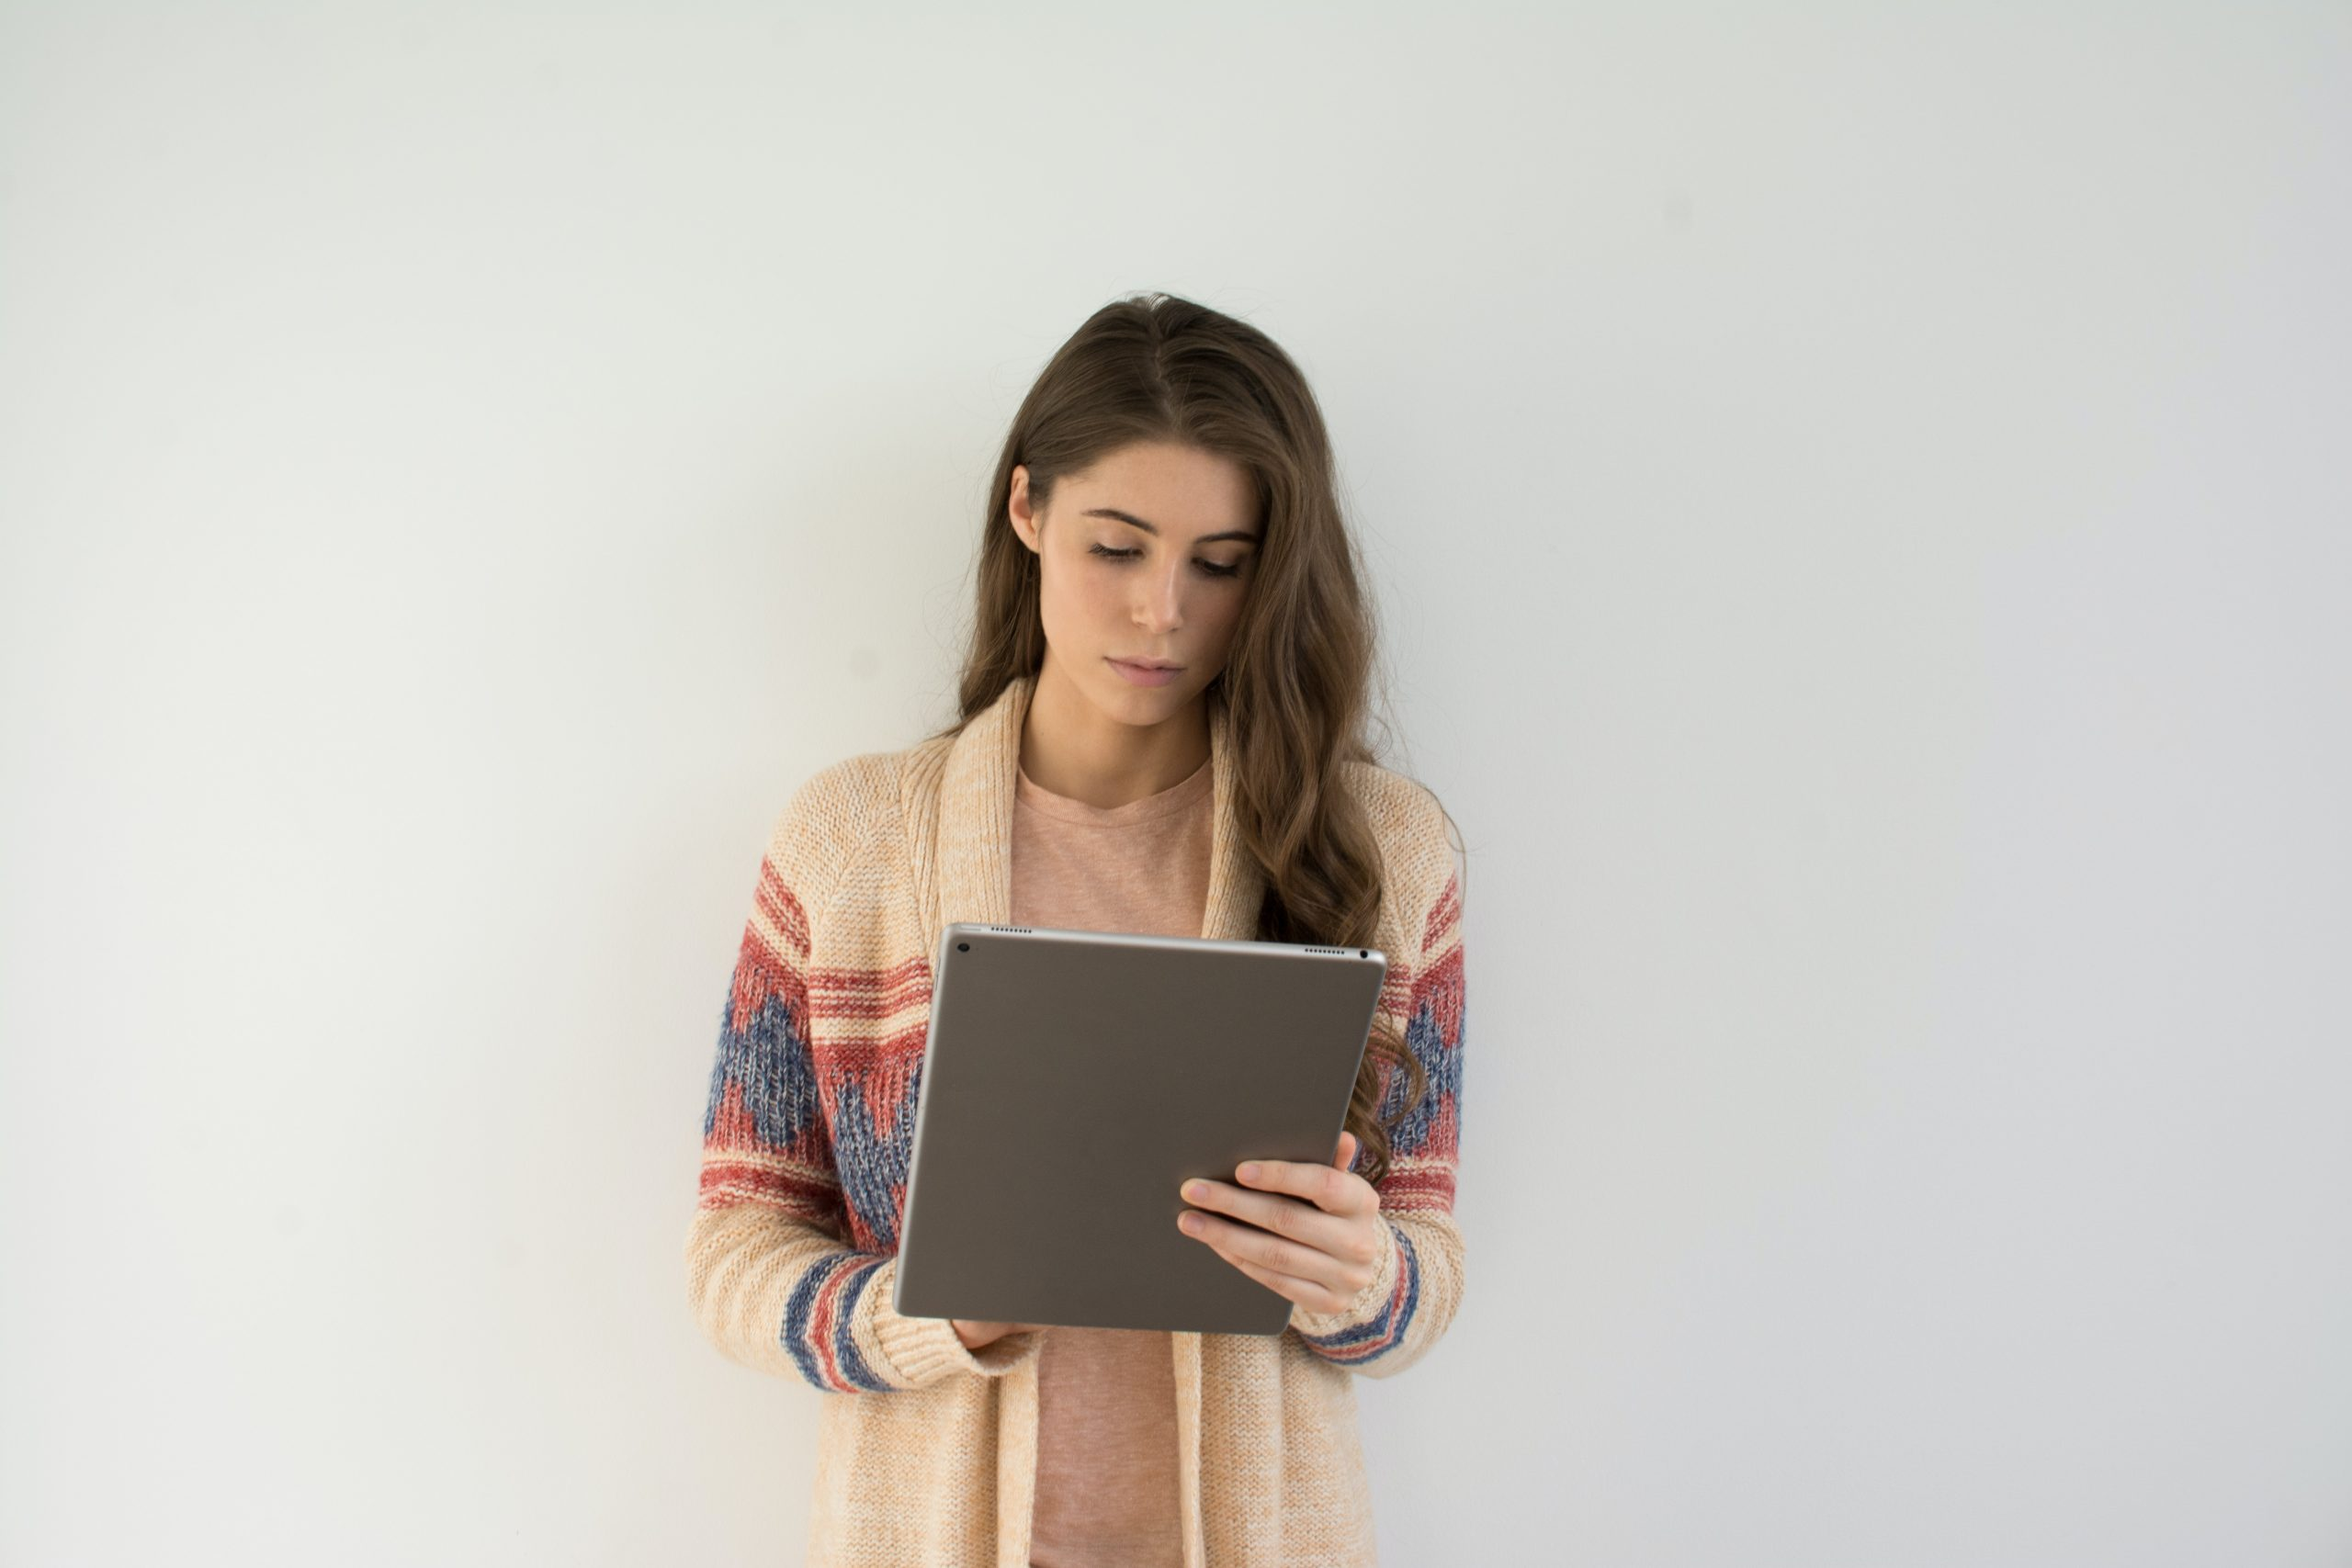 Woman on computer doing business